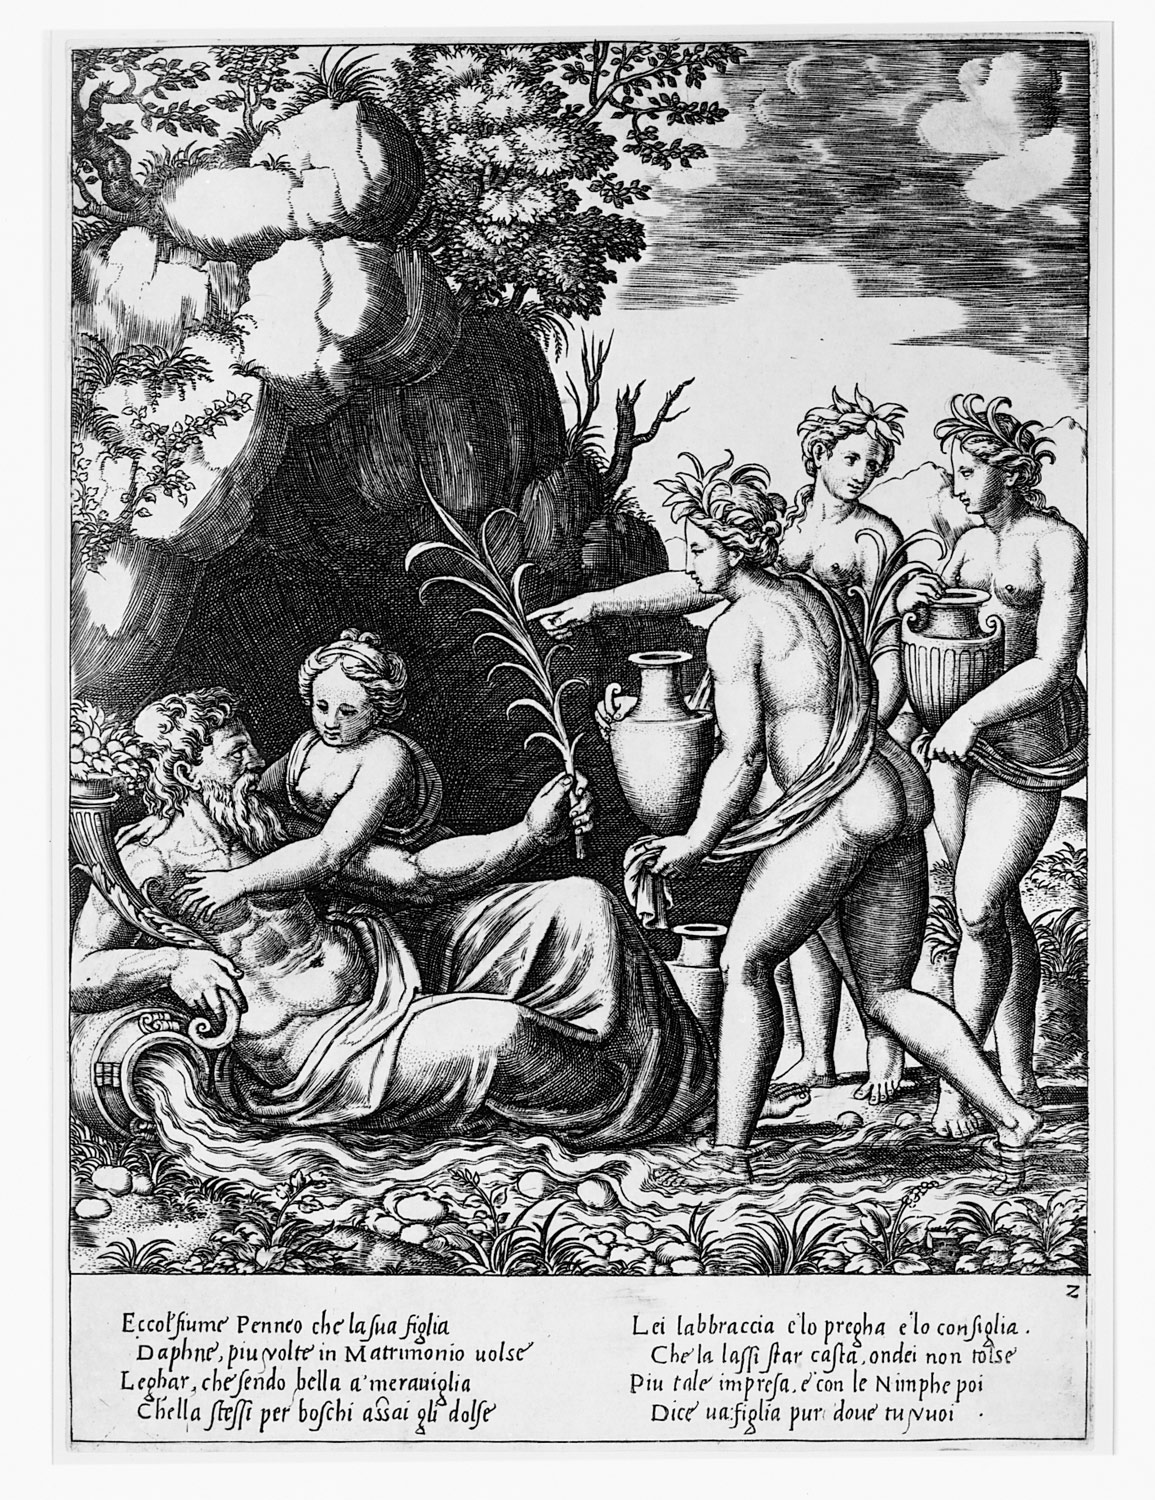 Apollo standing at left shooting a python with an arrow, above to the left are the muses and at right on a cloud Cupid approaching Apollo, from the Story of Apollo and Daphne